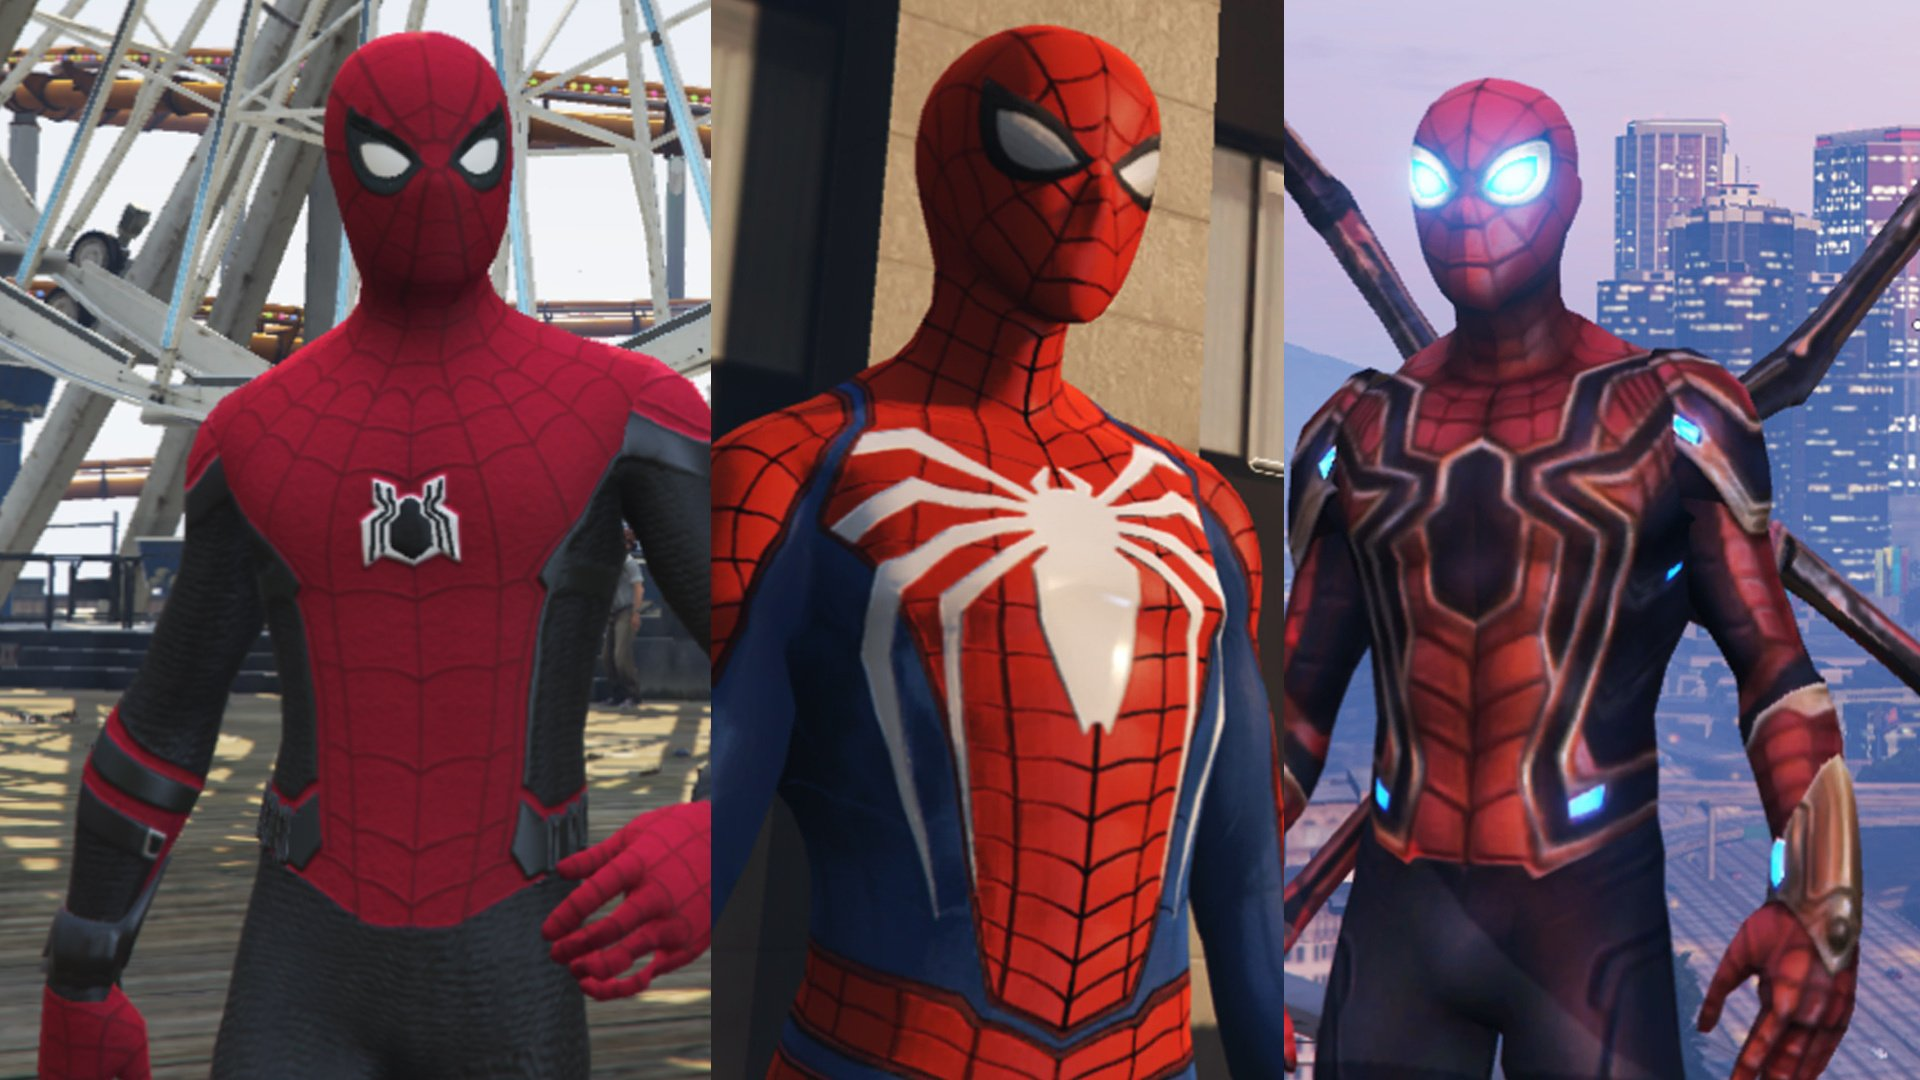 Spider-Man Pack (Far From Home, Infinity War, PS4 Advanced suit